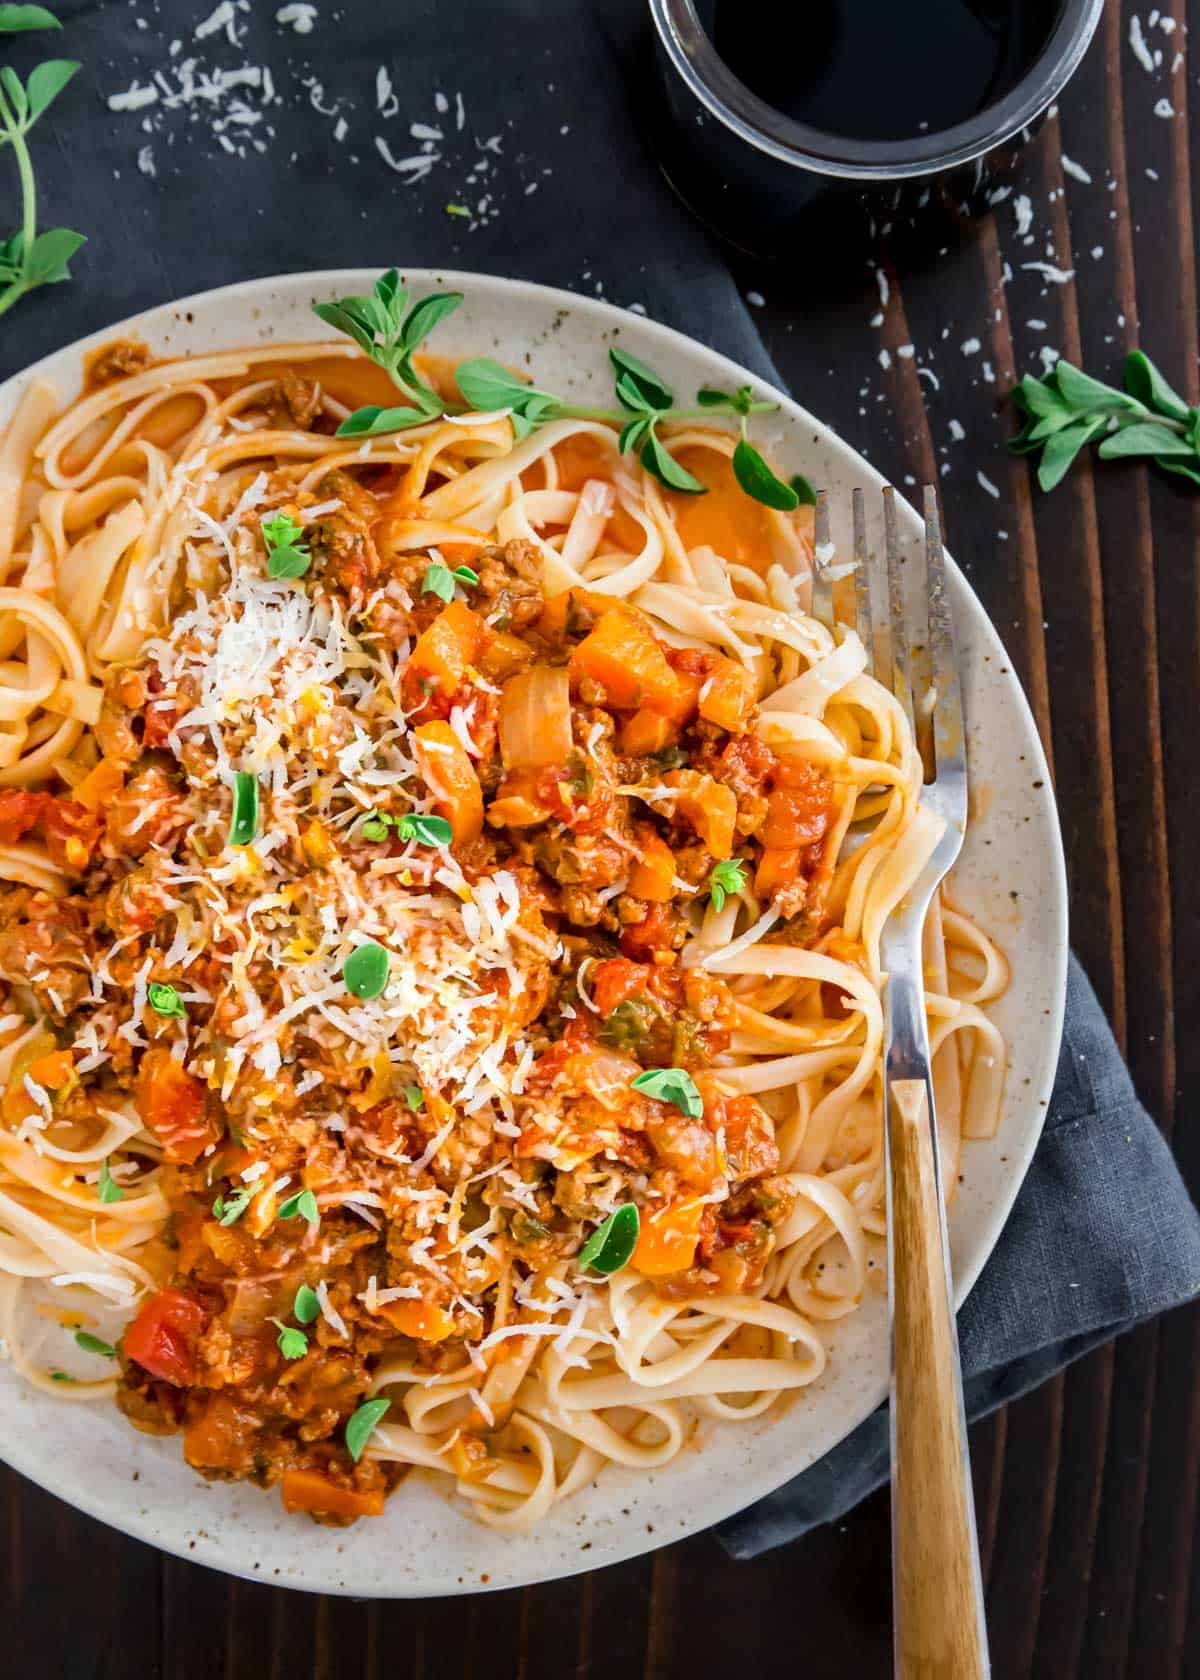 Making bolognese in the Instant Pot (or pressure cooker) is a much quicker and easier spin on the classic Italian meat sauce. You'll still get all the rich and hearty depth of flavor in a fraction of the time from the traditional stove top method. Serve over your favorite pasta with a good dose of parmesan cheese.